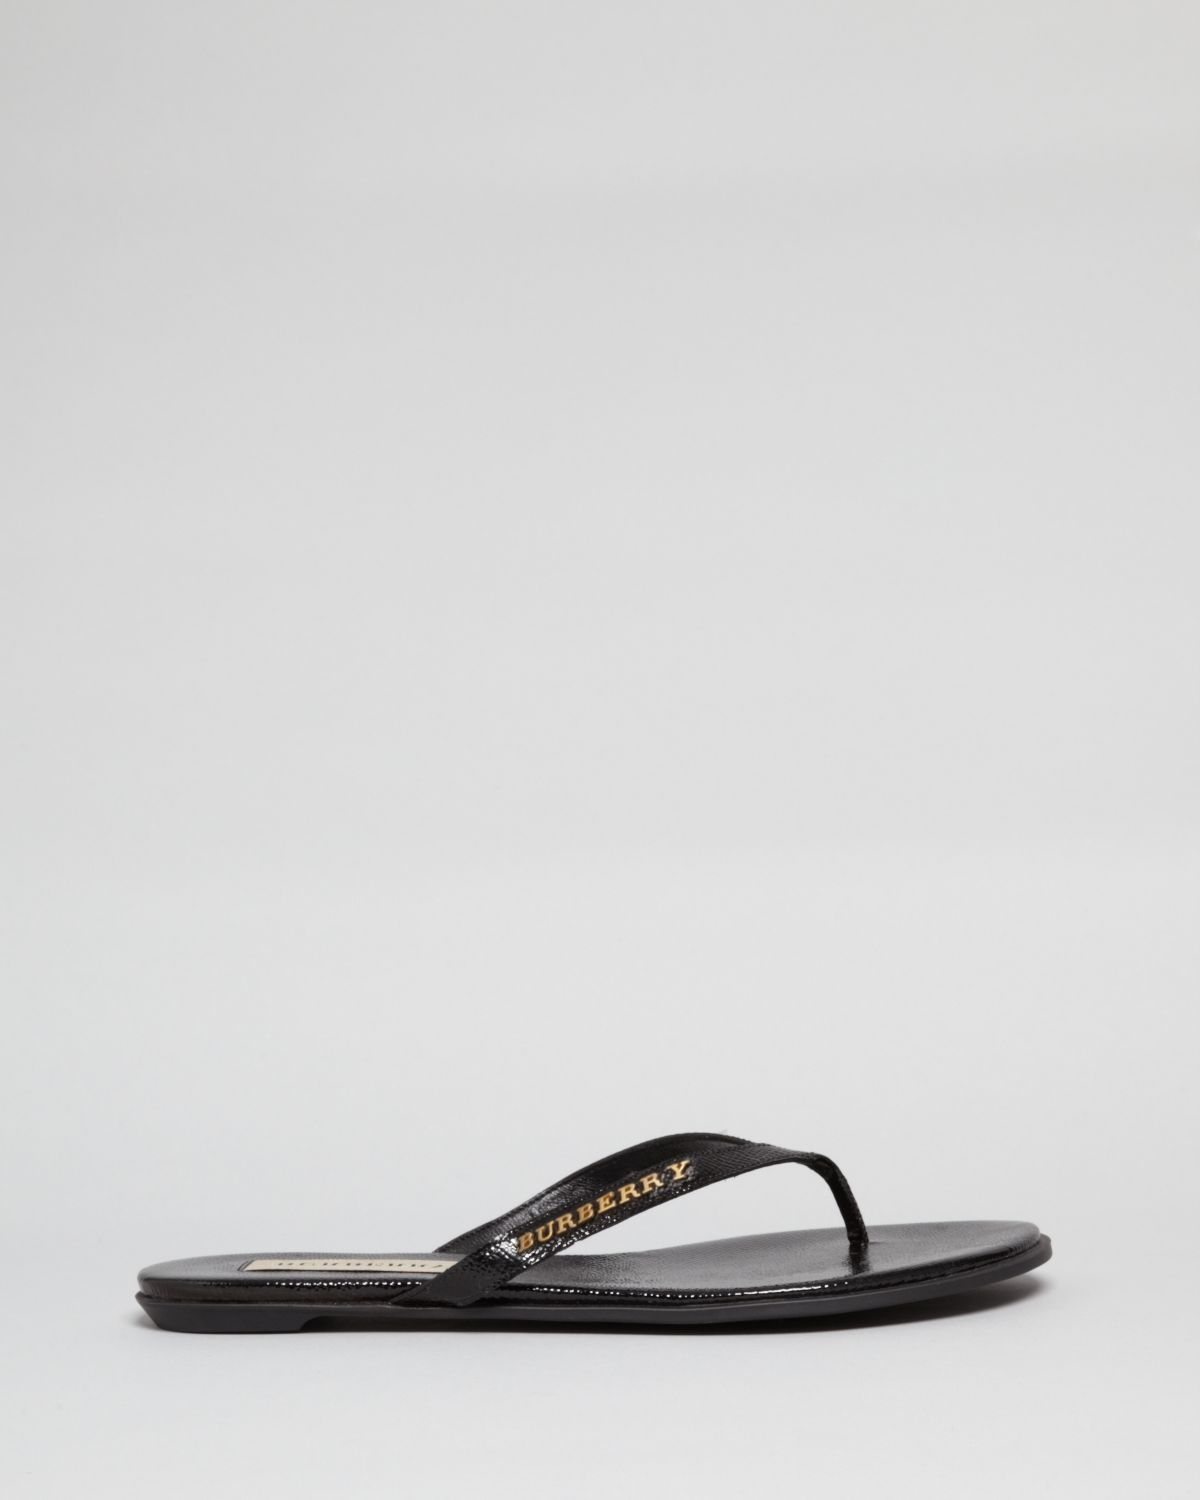 5acf8ba2772e Lyst - Burberry Flip Flop Thong Sandals Bloomhall in Black